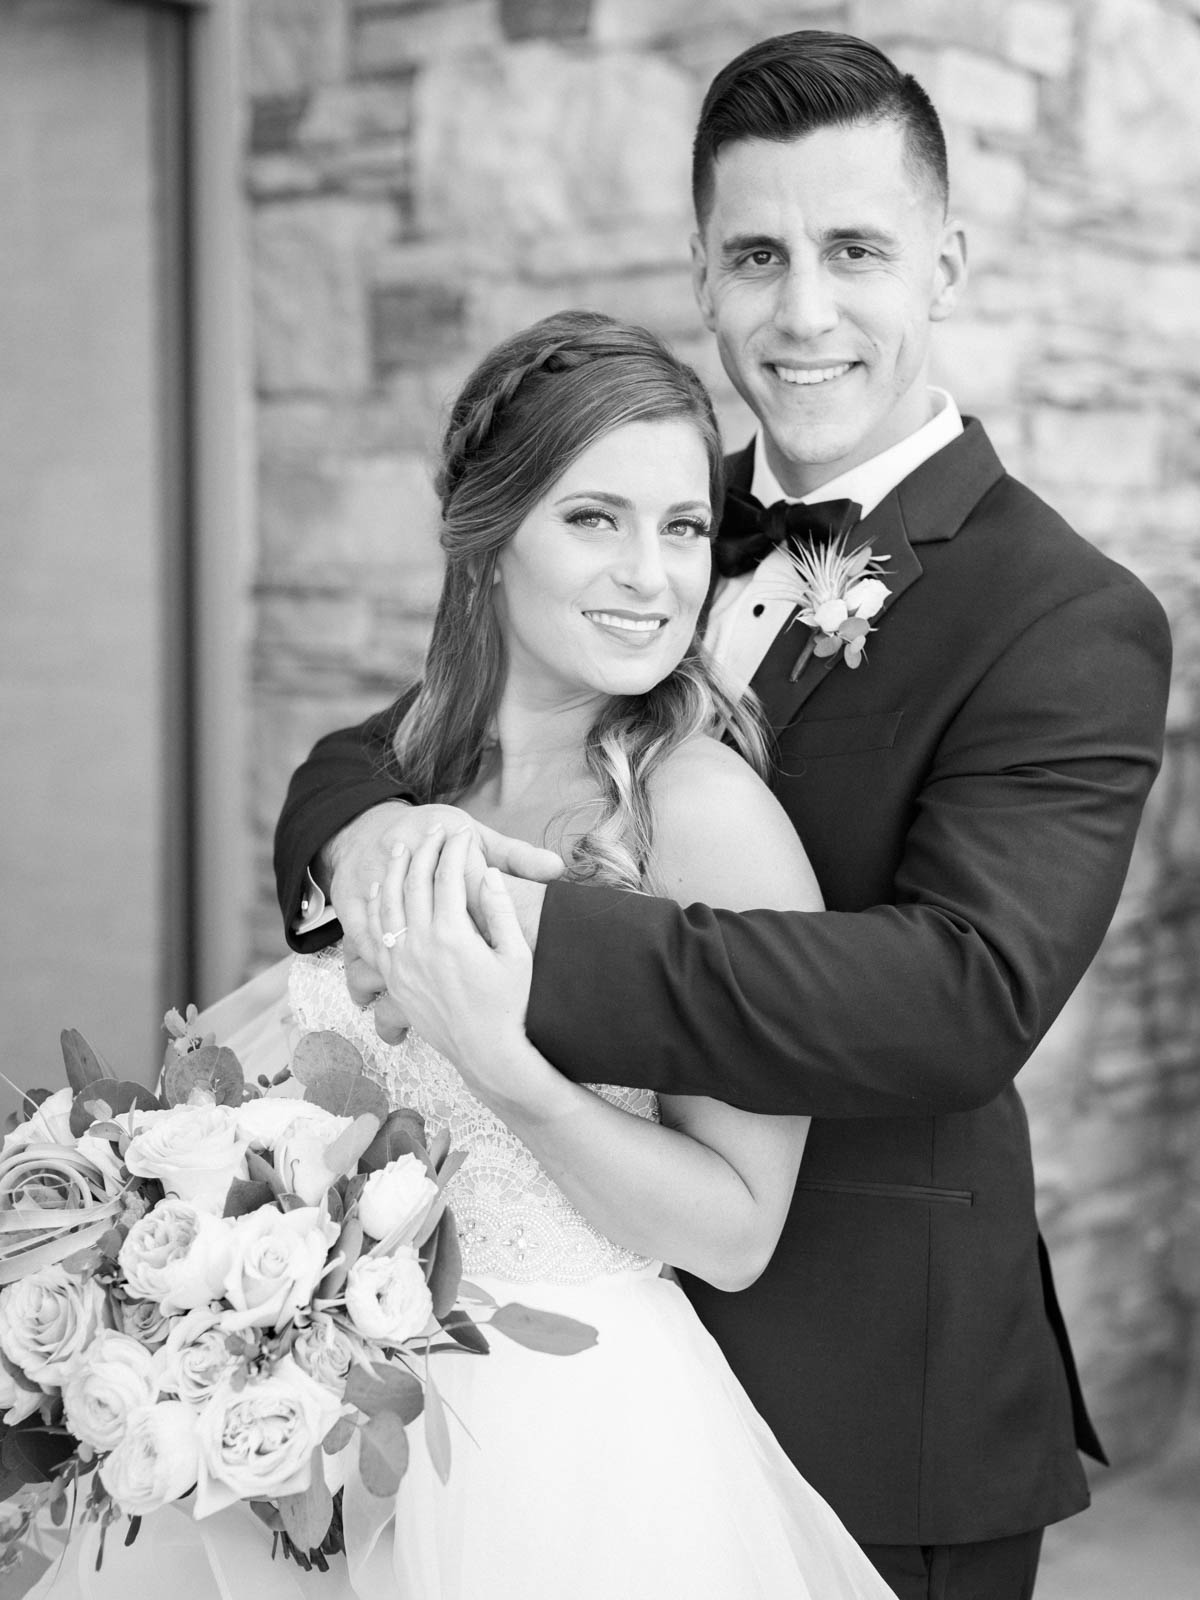 Starr Pass wedding captured by Tucson Wedding Photographers Betsy & John